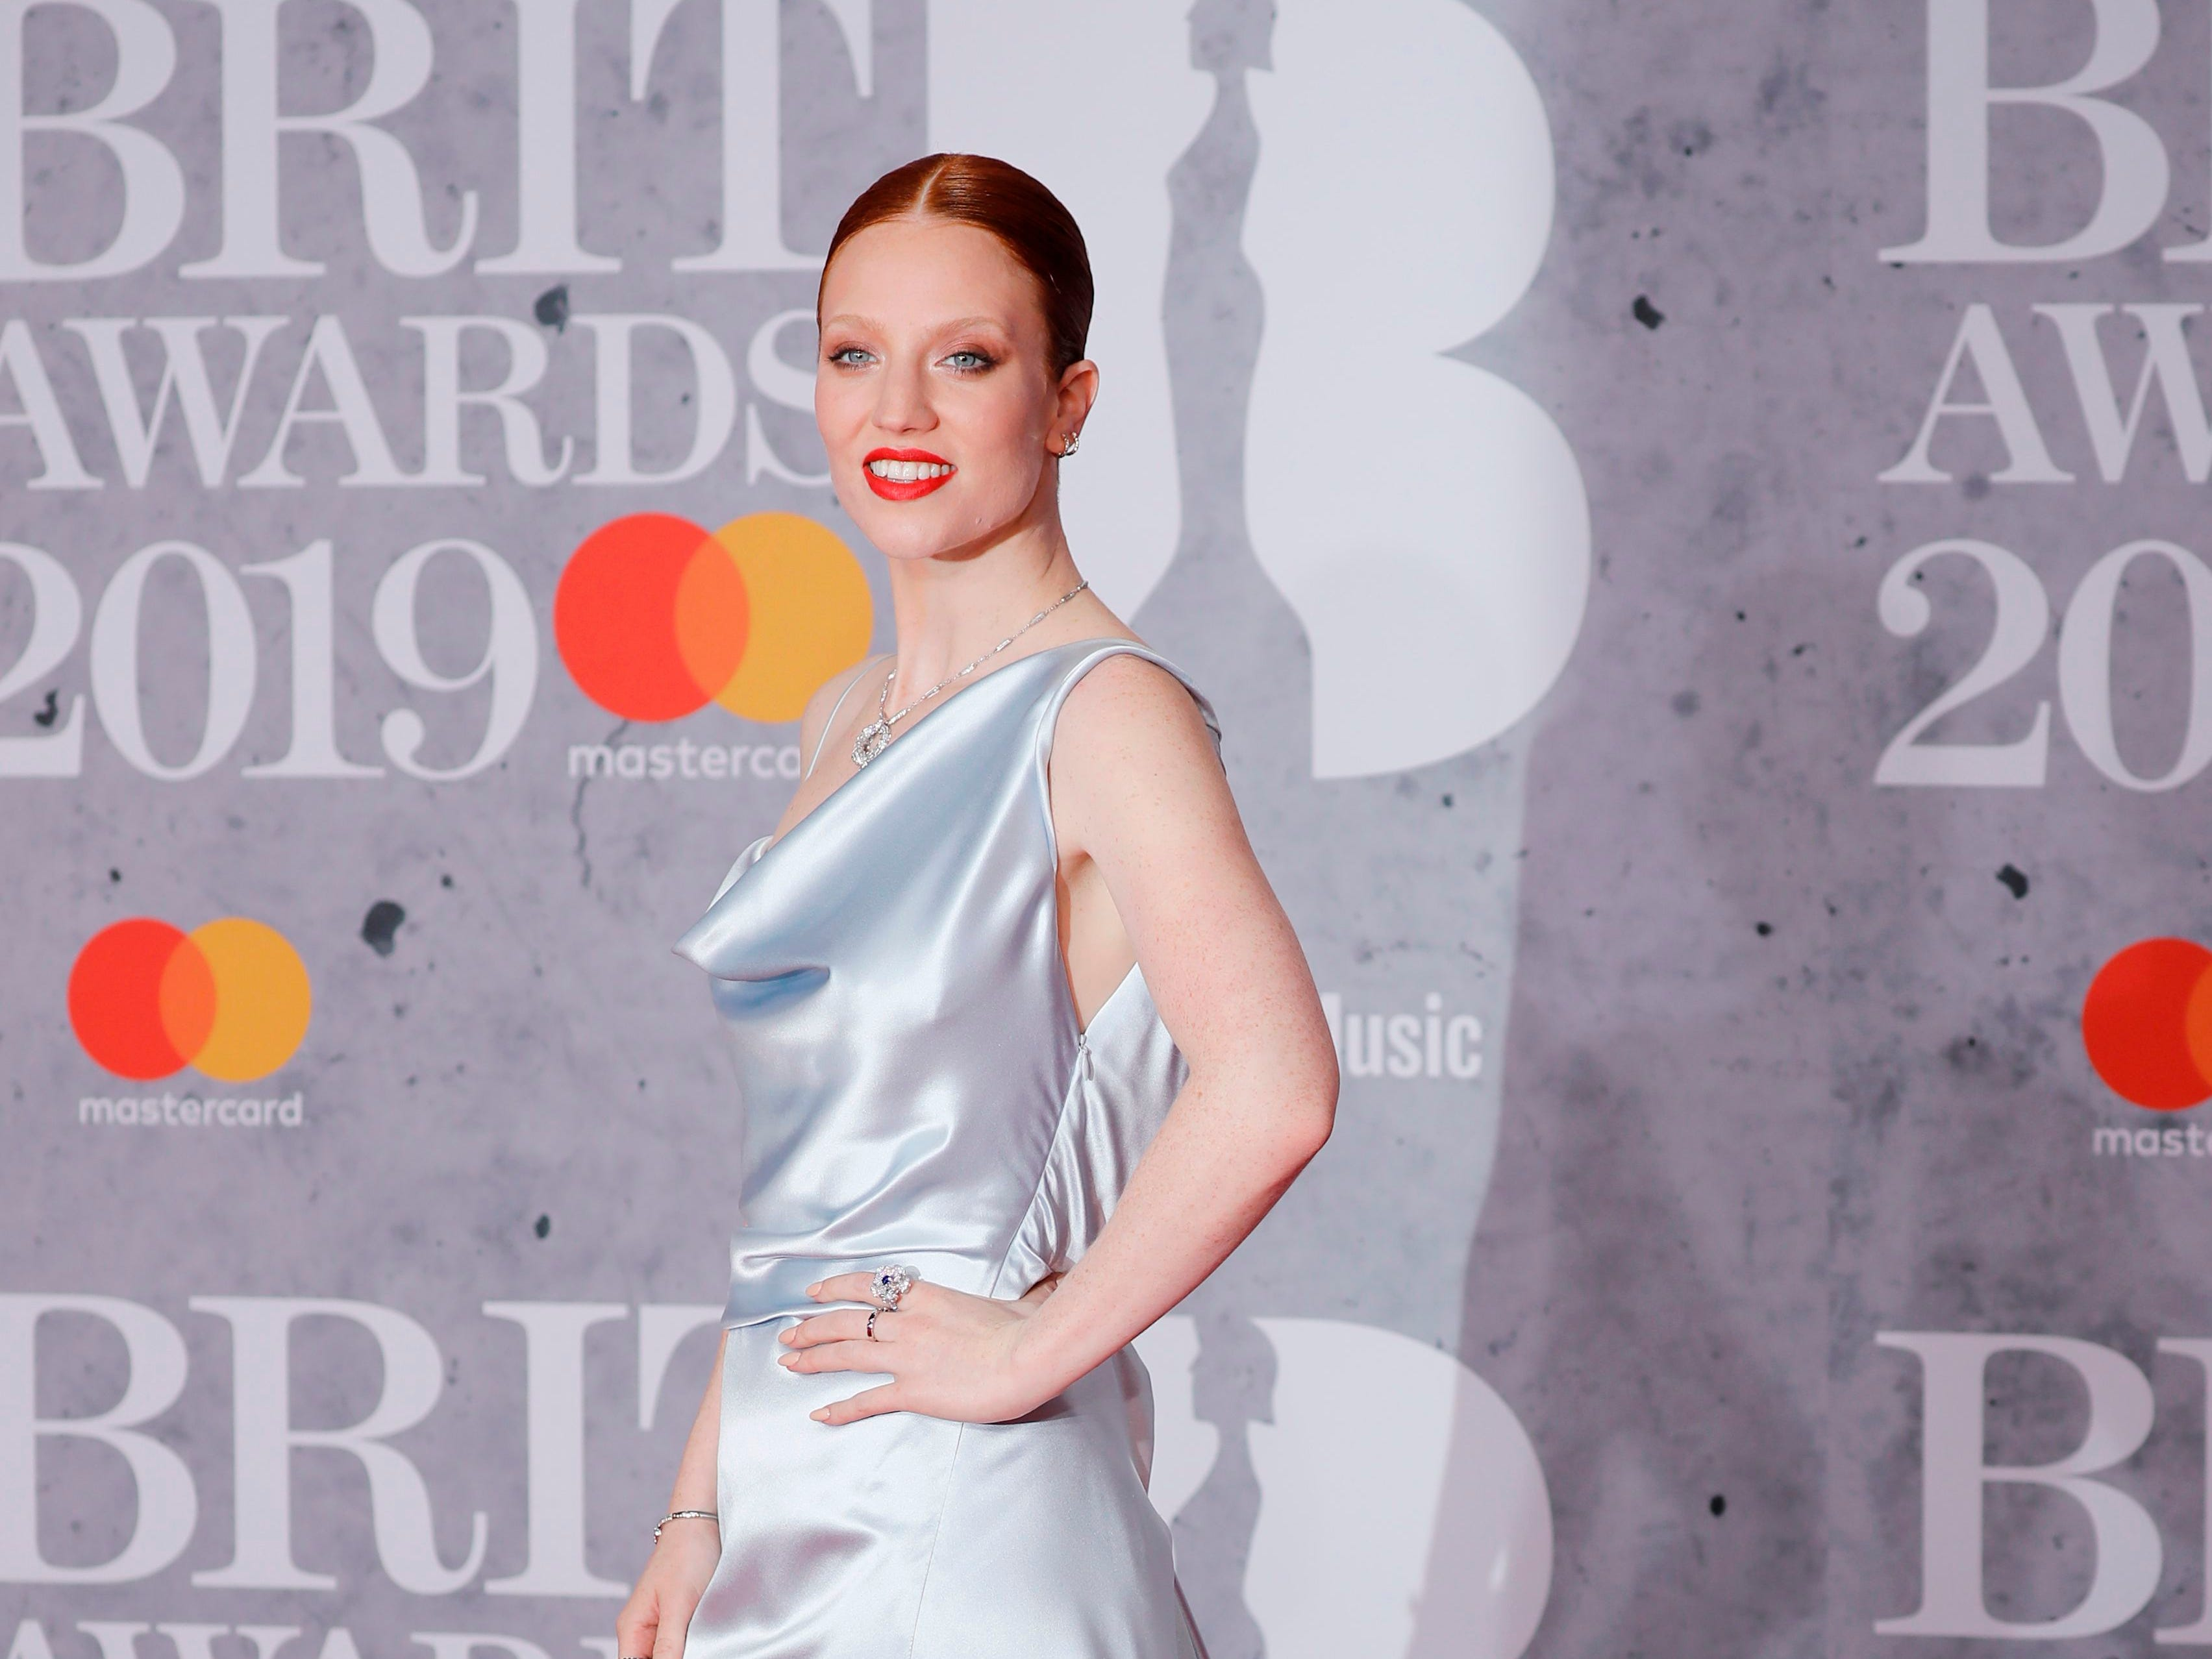 British singer-songwriter Jess Glynne poses on the red carpet on arrival for the BRIT Awards 2019 in London on February 20, 2019. (Photo by Tolga AKMEN / AFP) / RESTRICTED TO EDITORIAL USE  NO POSTERS  NO MERCHANDISE NO USE IN PUBLICATIONS DEVOTED TO ARTISTSTOLGA AKMEN/AFP/Getty Images ORIG FILE ID: AFP_1DO125